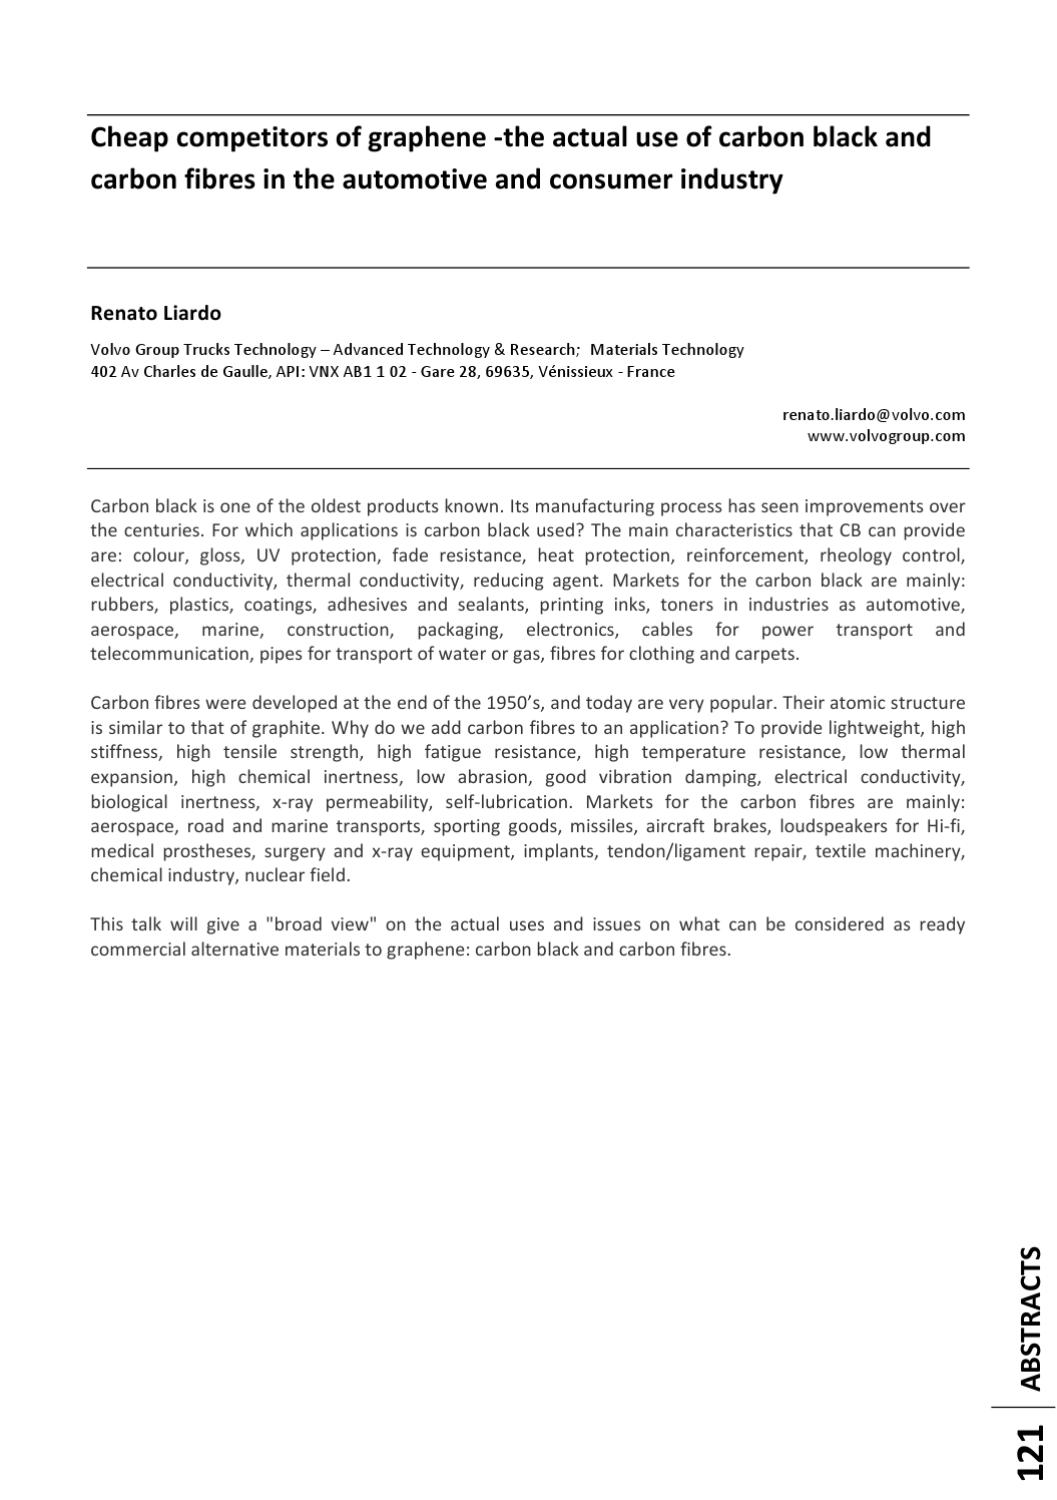 Graphene 2012 Abstract Book April 10-13, 2012 Brussels (Belgium)